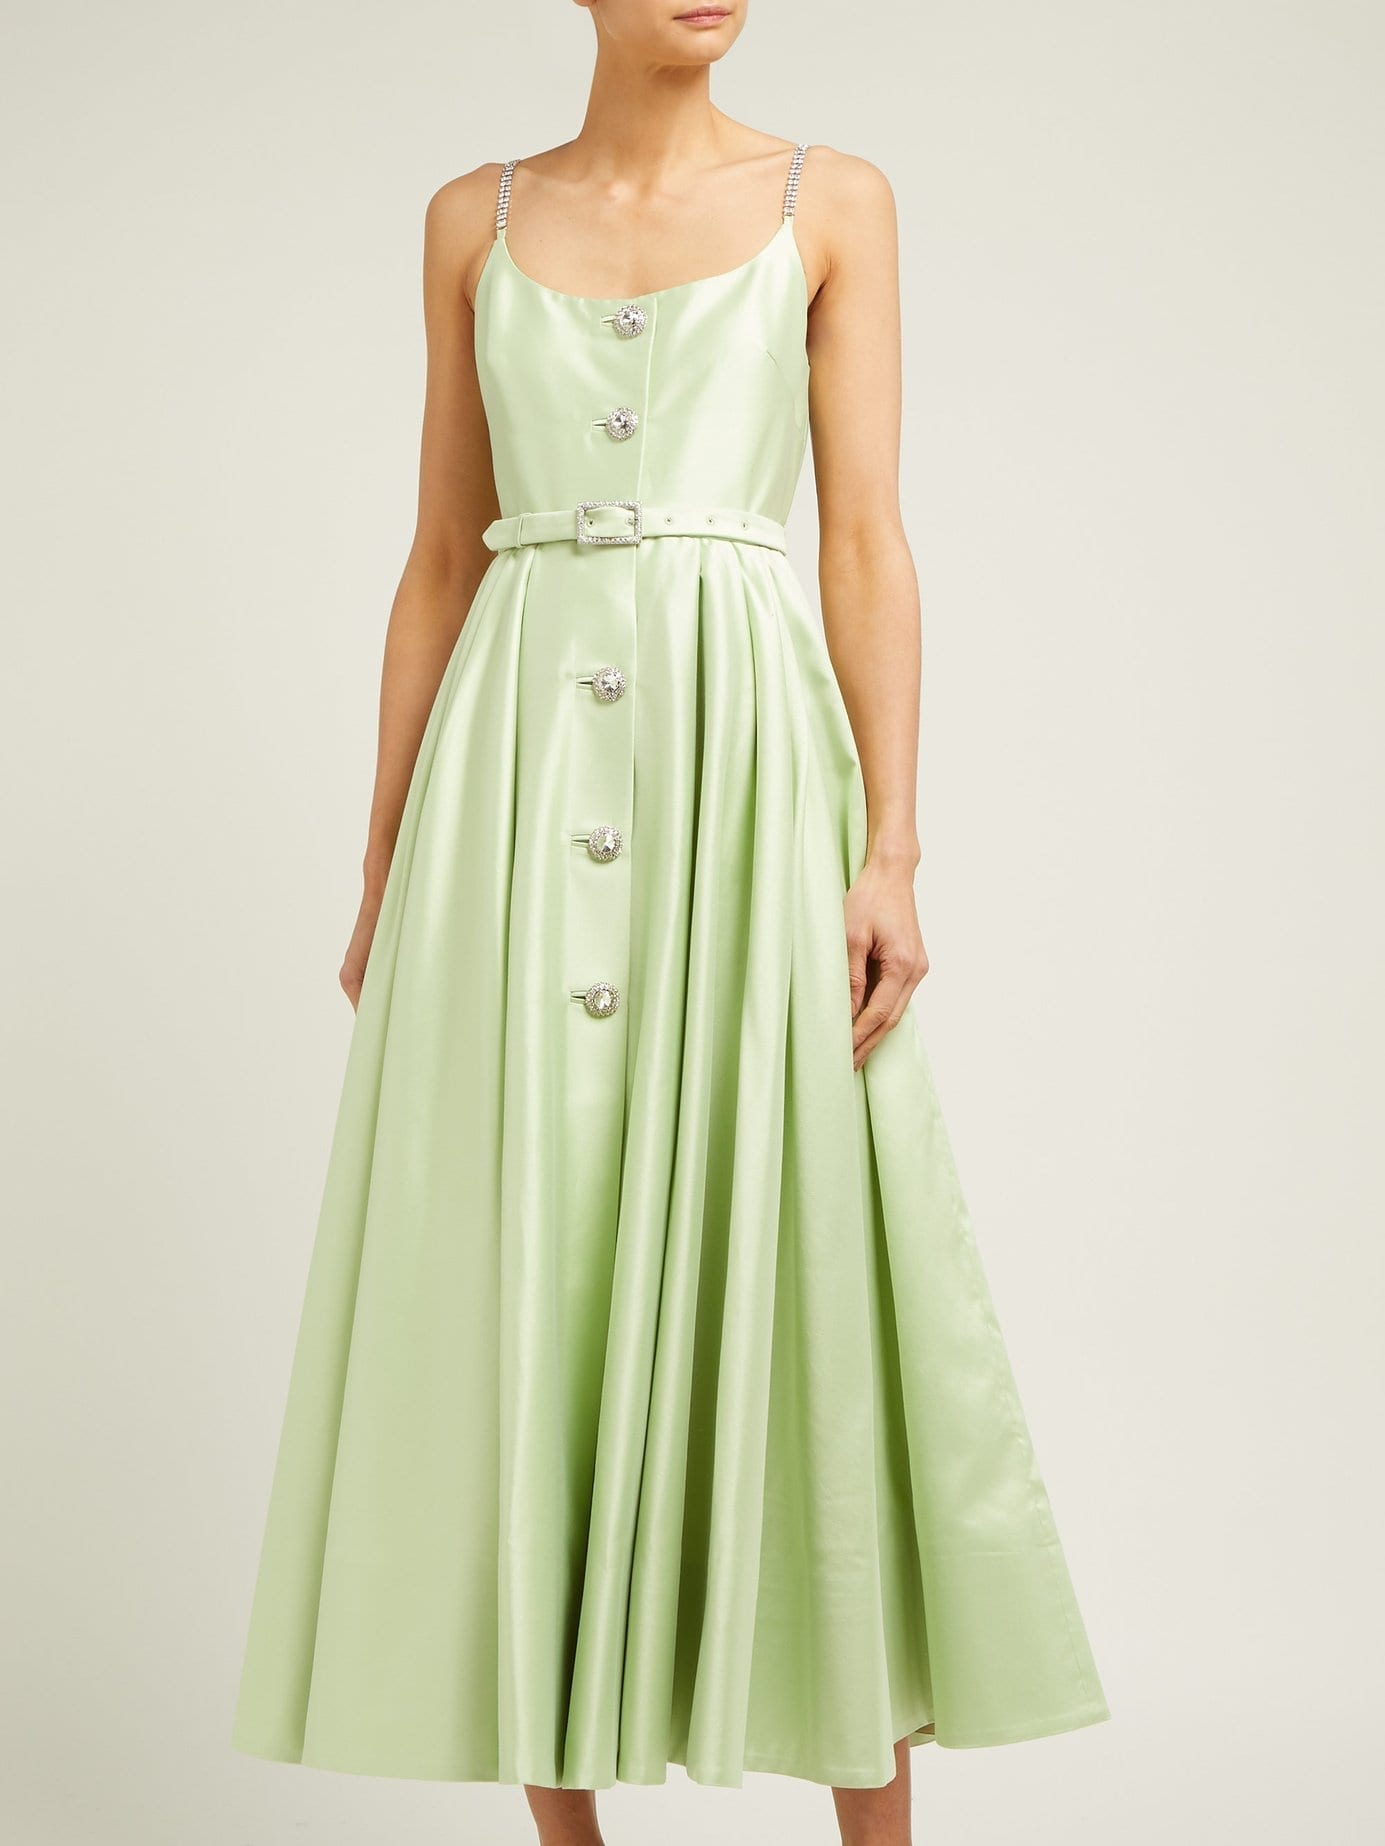 ALESSANDRA RICH Crystal-Embellished Cotton-Blend Midi Green Dress